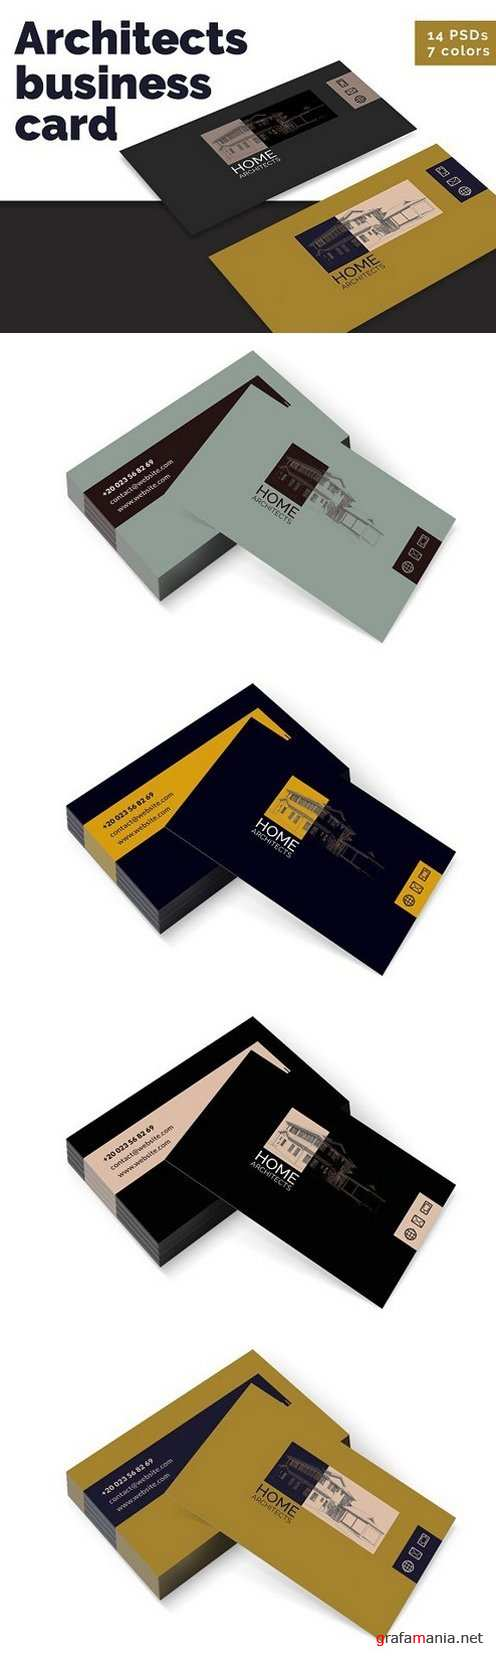 Architects Business Cards Templates - 1312888